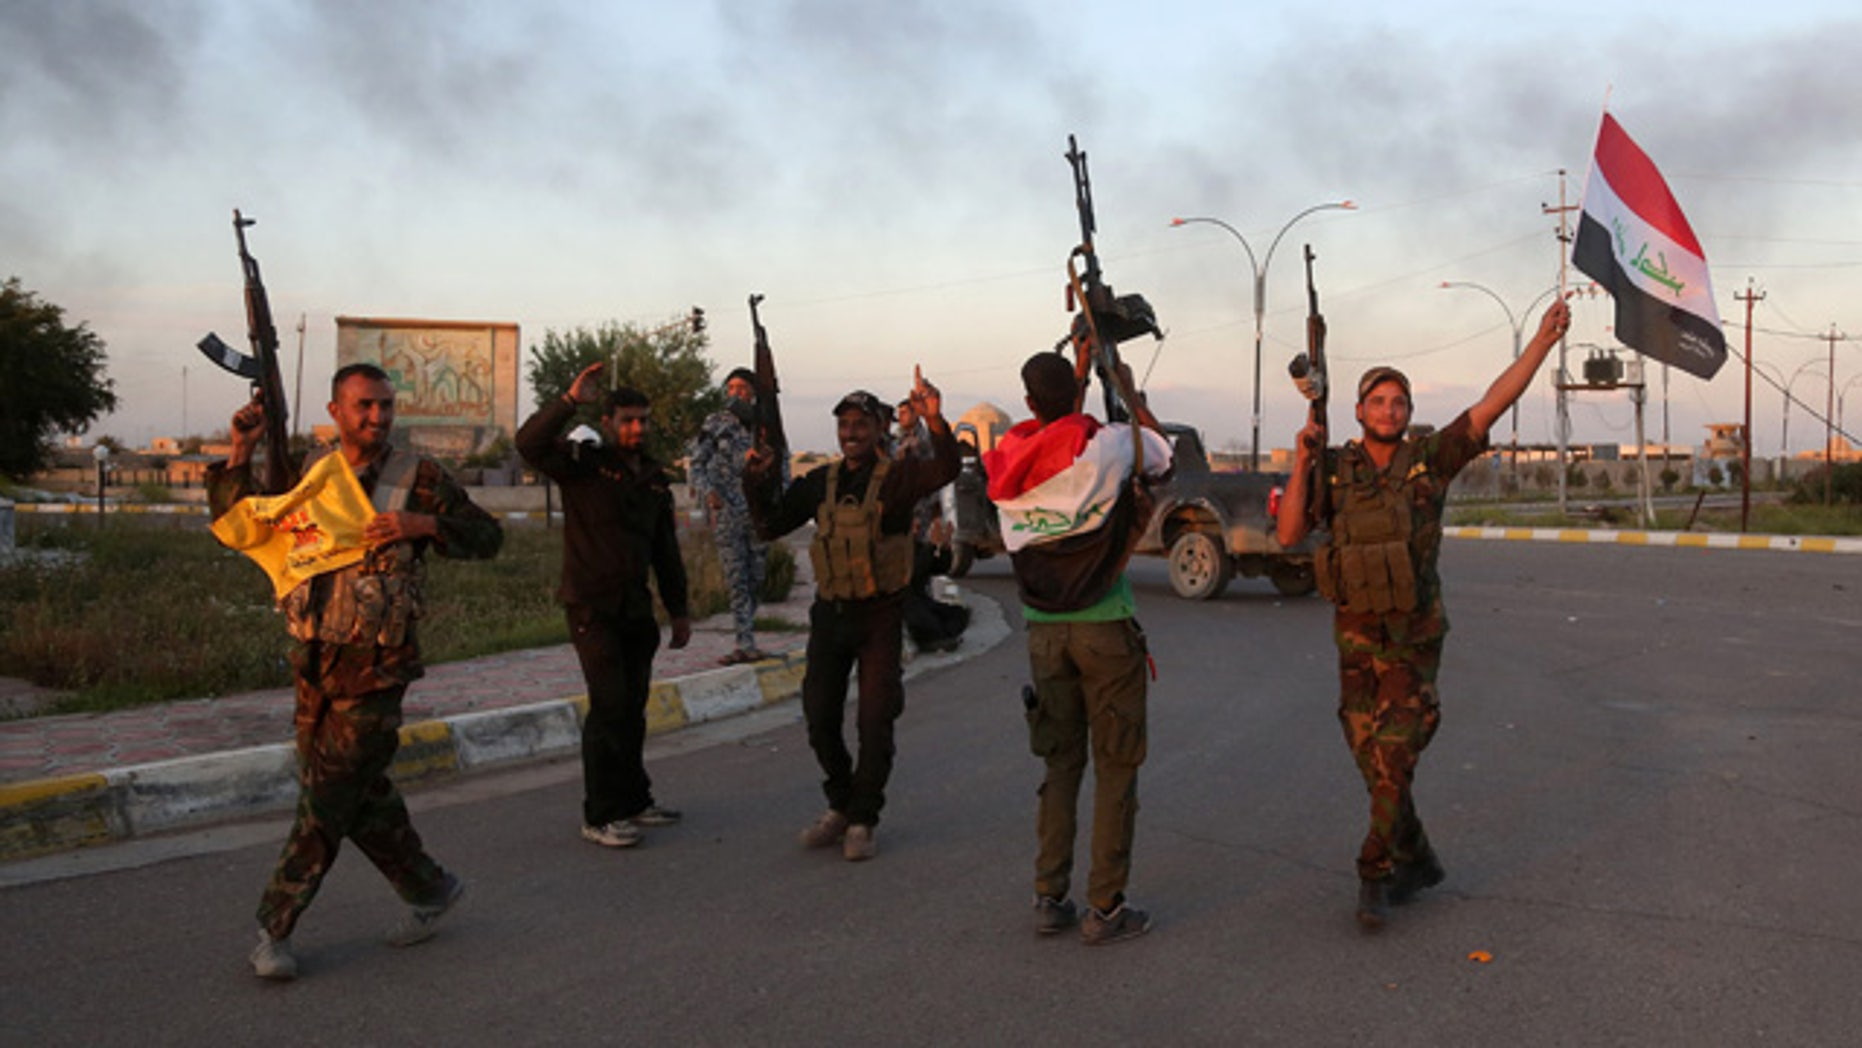 FILE - In this Tuesday, March 31, 2015 file photo, Iraqi security forces and allied Shiite militiamen celebrate in central Tikrit, 80 miles north of Baghdad. (AP Photo/Khalid Mohammed, File)